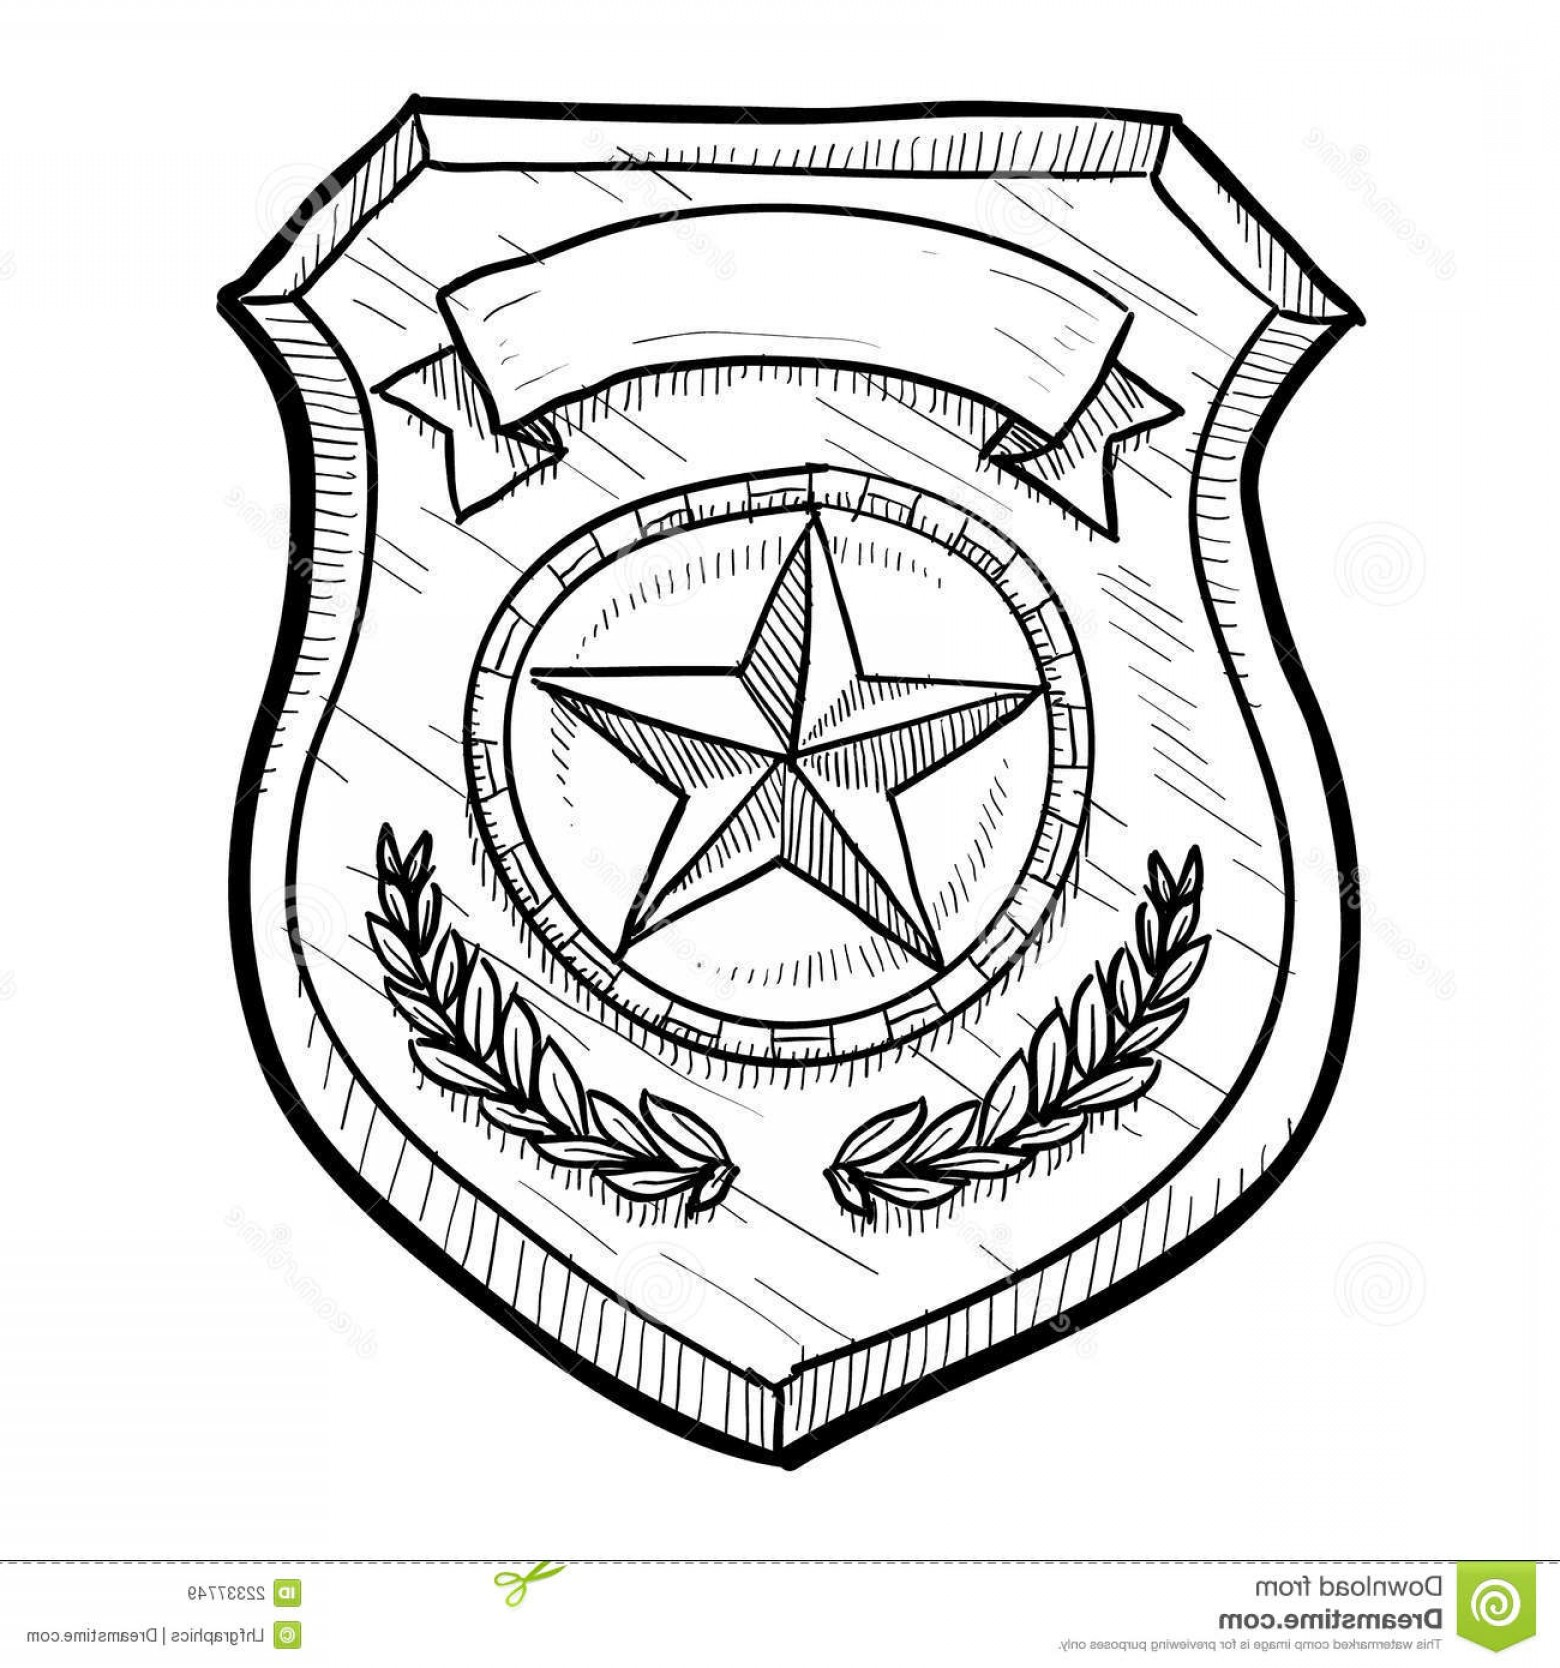 1560x1668 Amazing Police Badge Drawing Or Firefighter Sketch Stock Vector